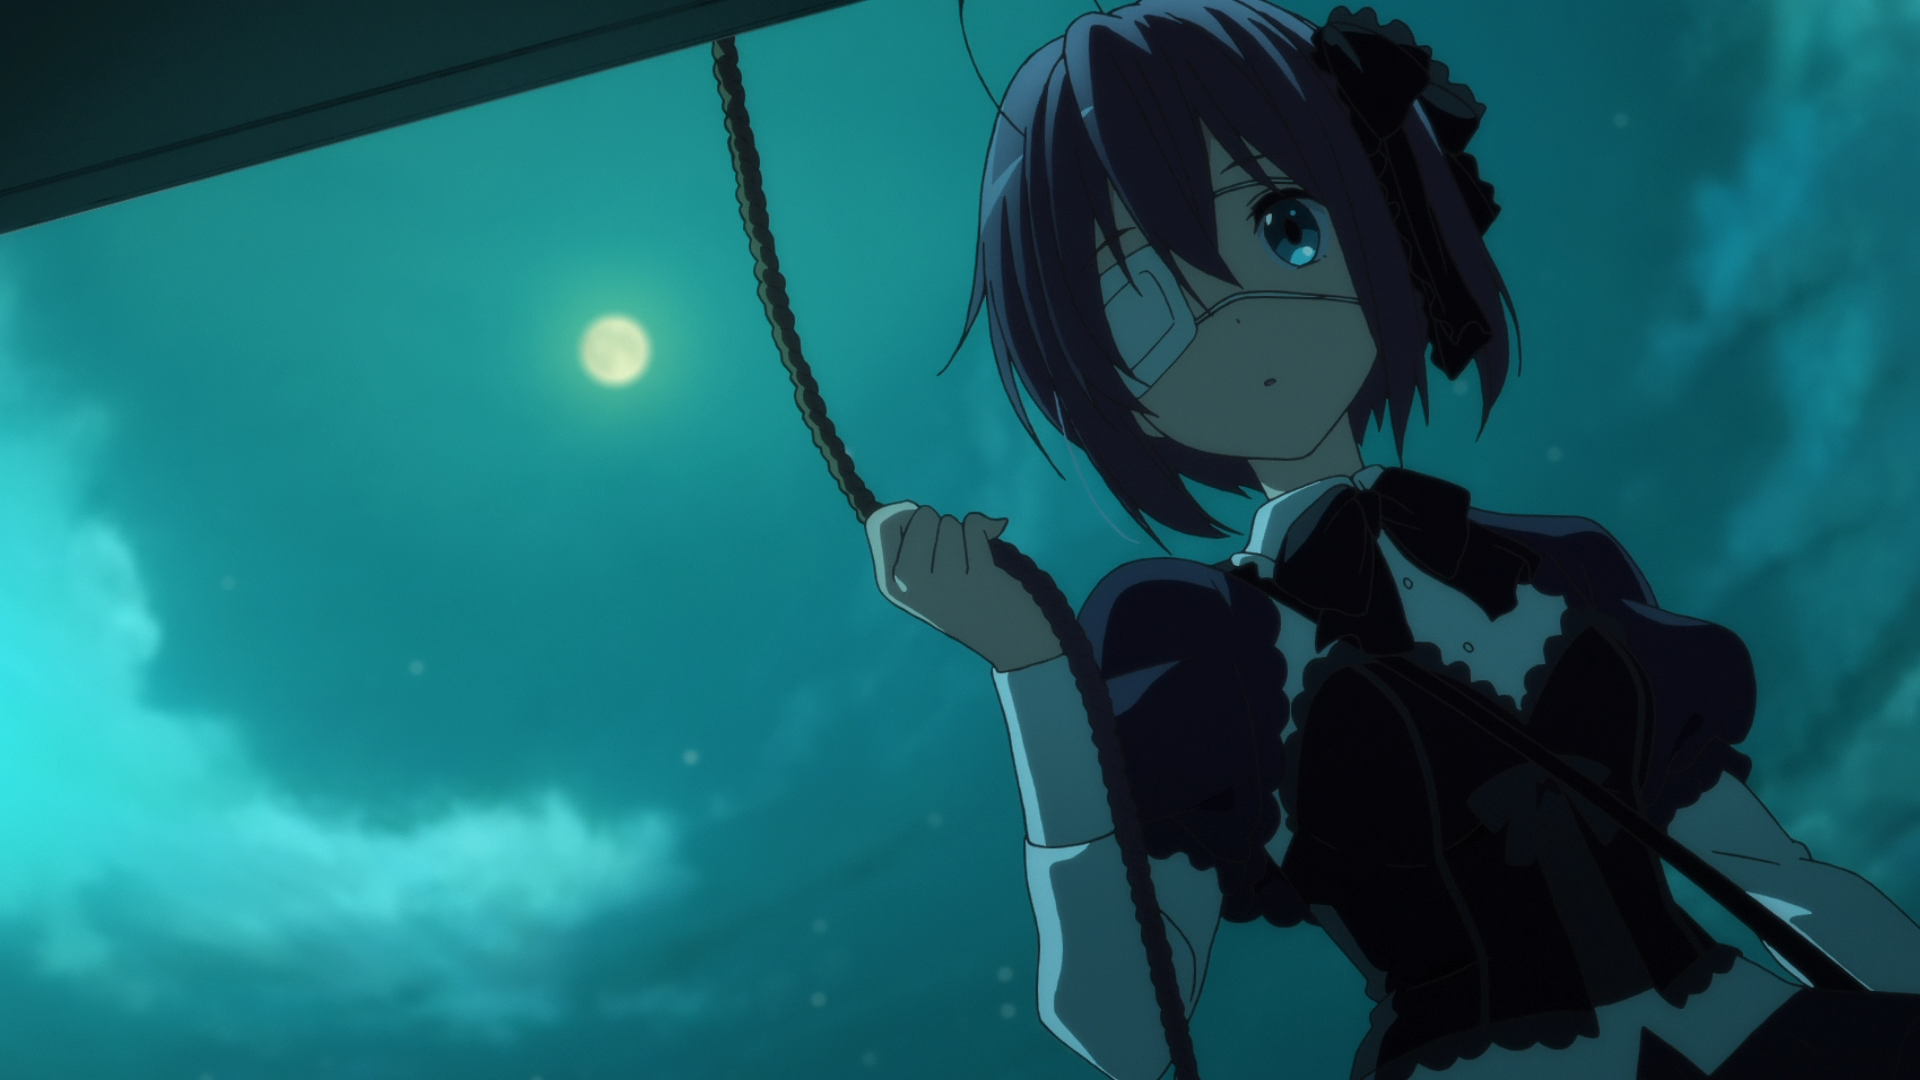 Rikka Takanashi Wallpaper Posted By Samantha Johnson